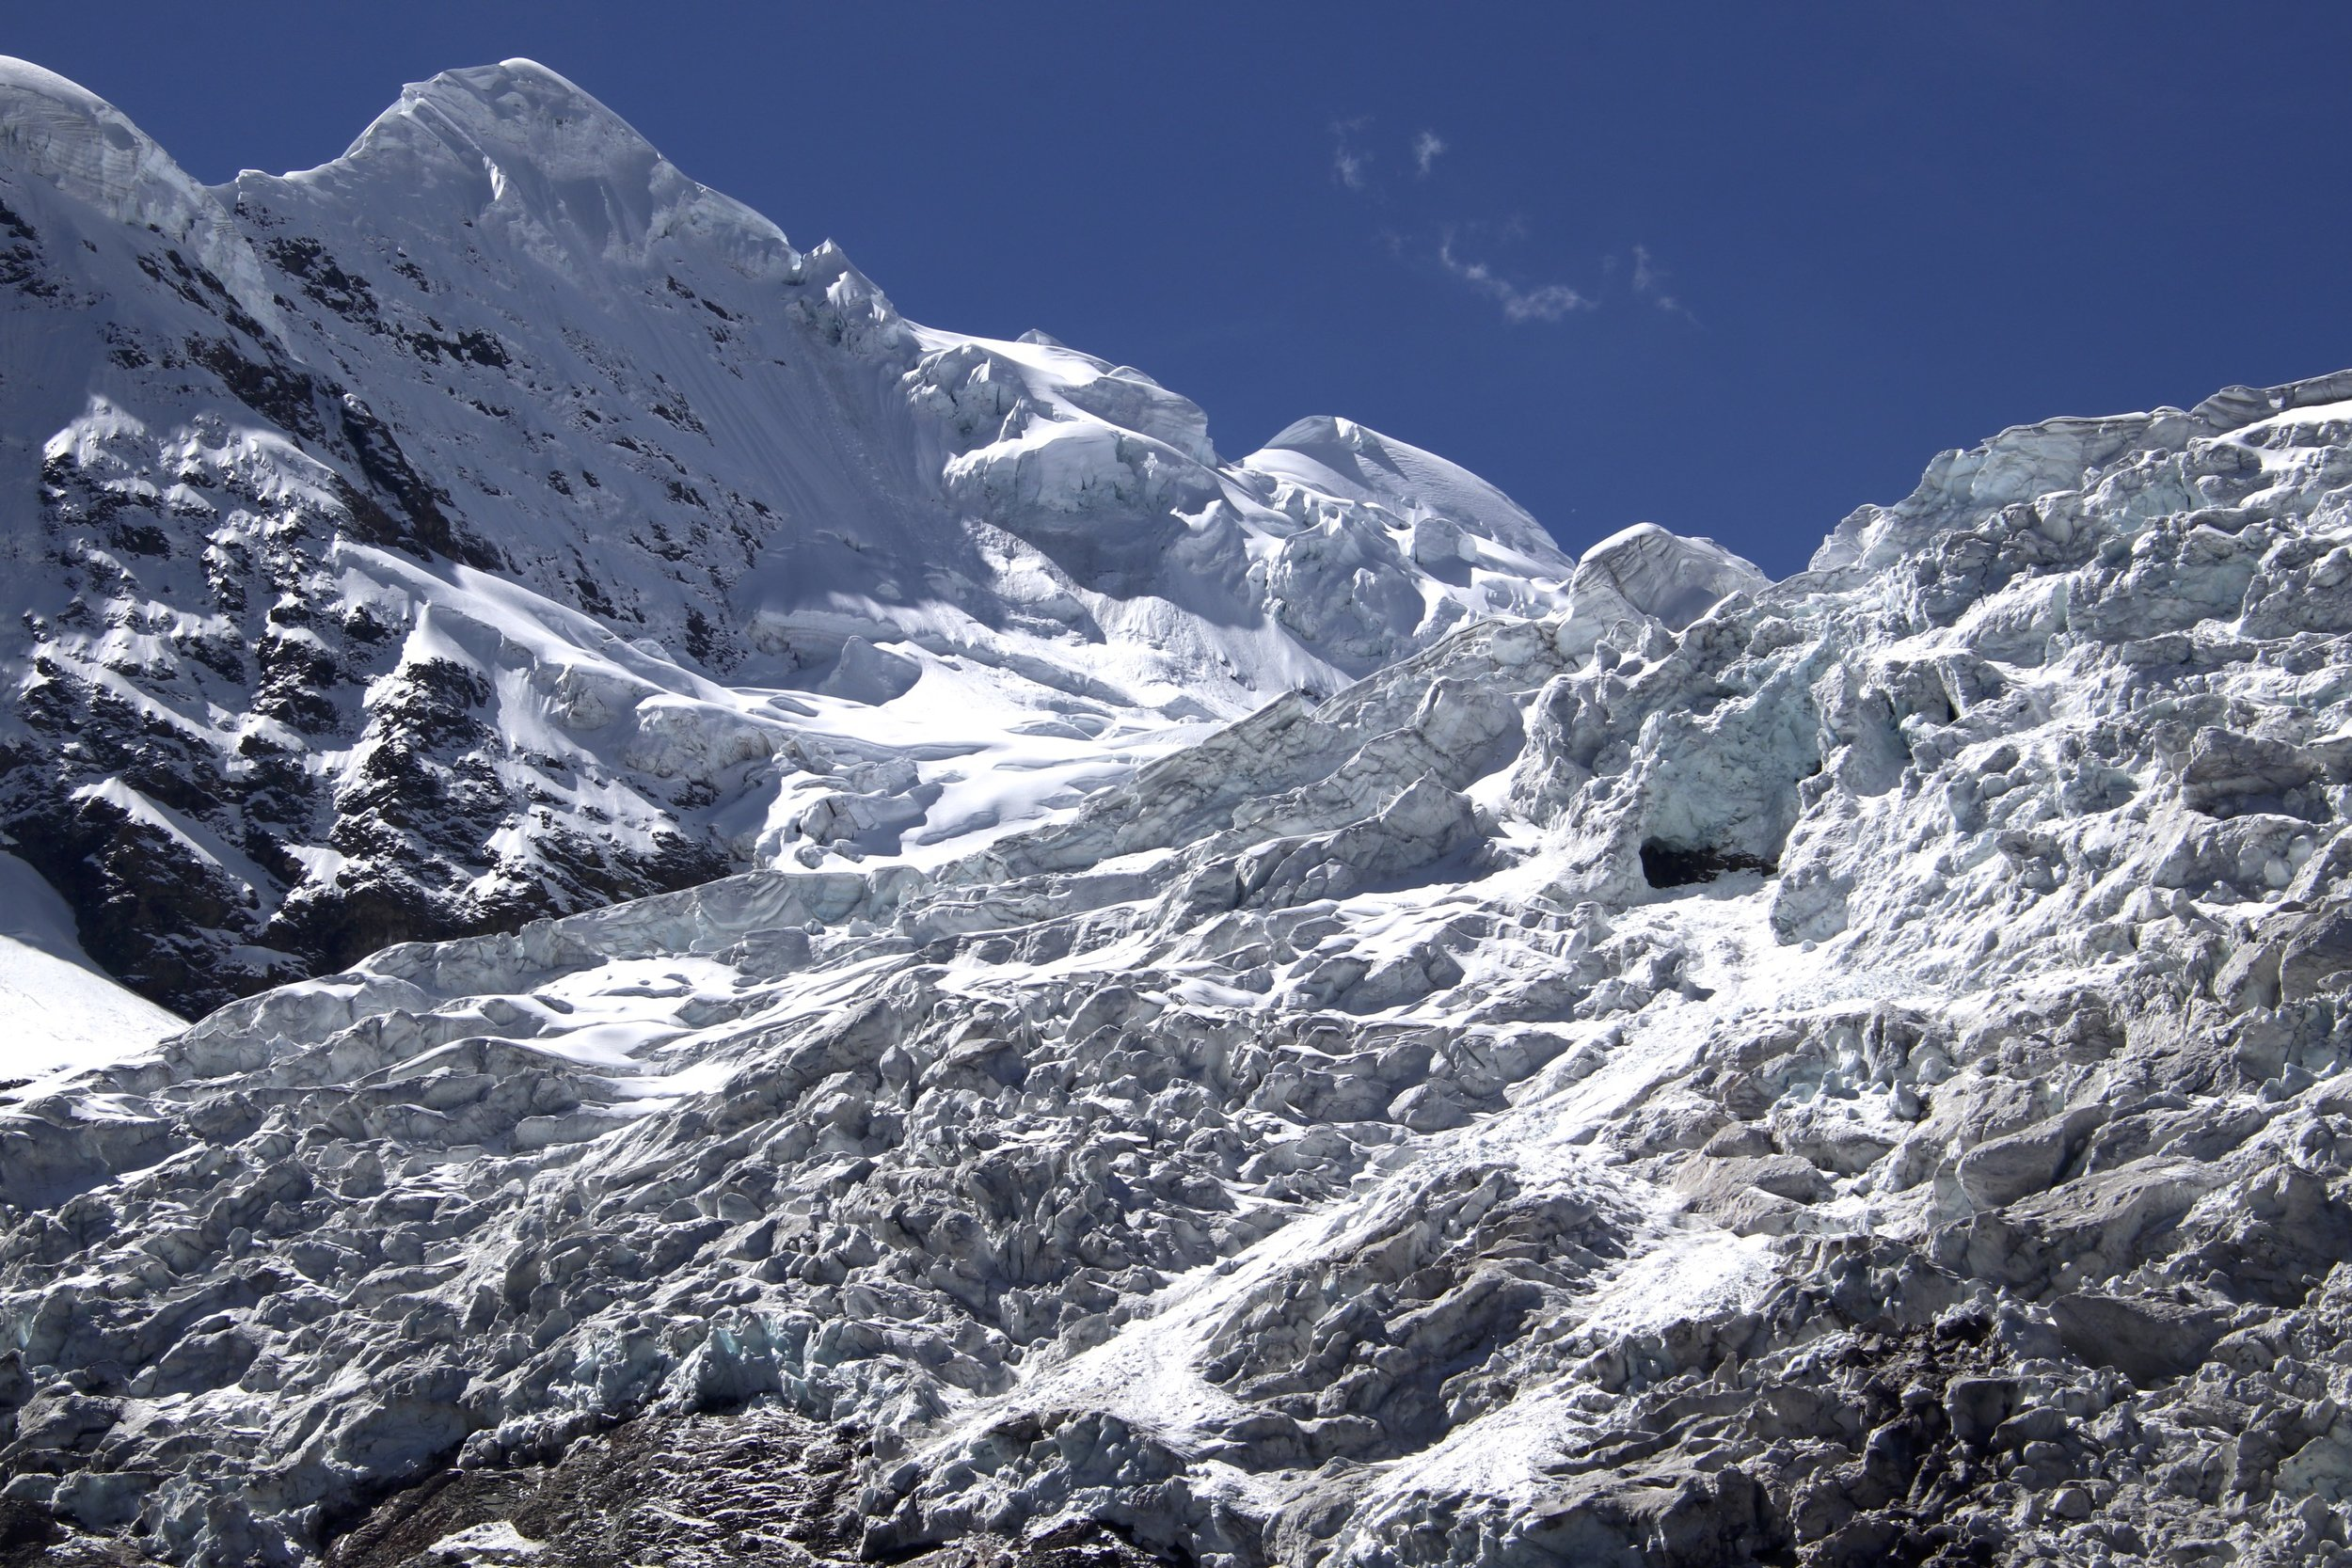 The impressive icefall of Ausangate. The same face of Ausangate is visible from the Rainbow Mountain.